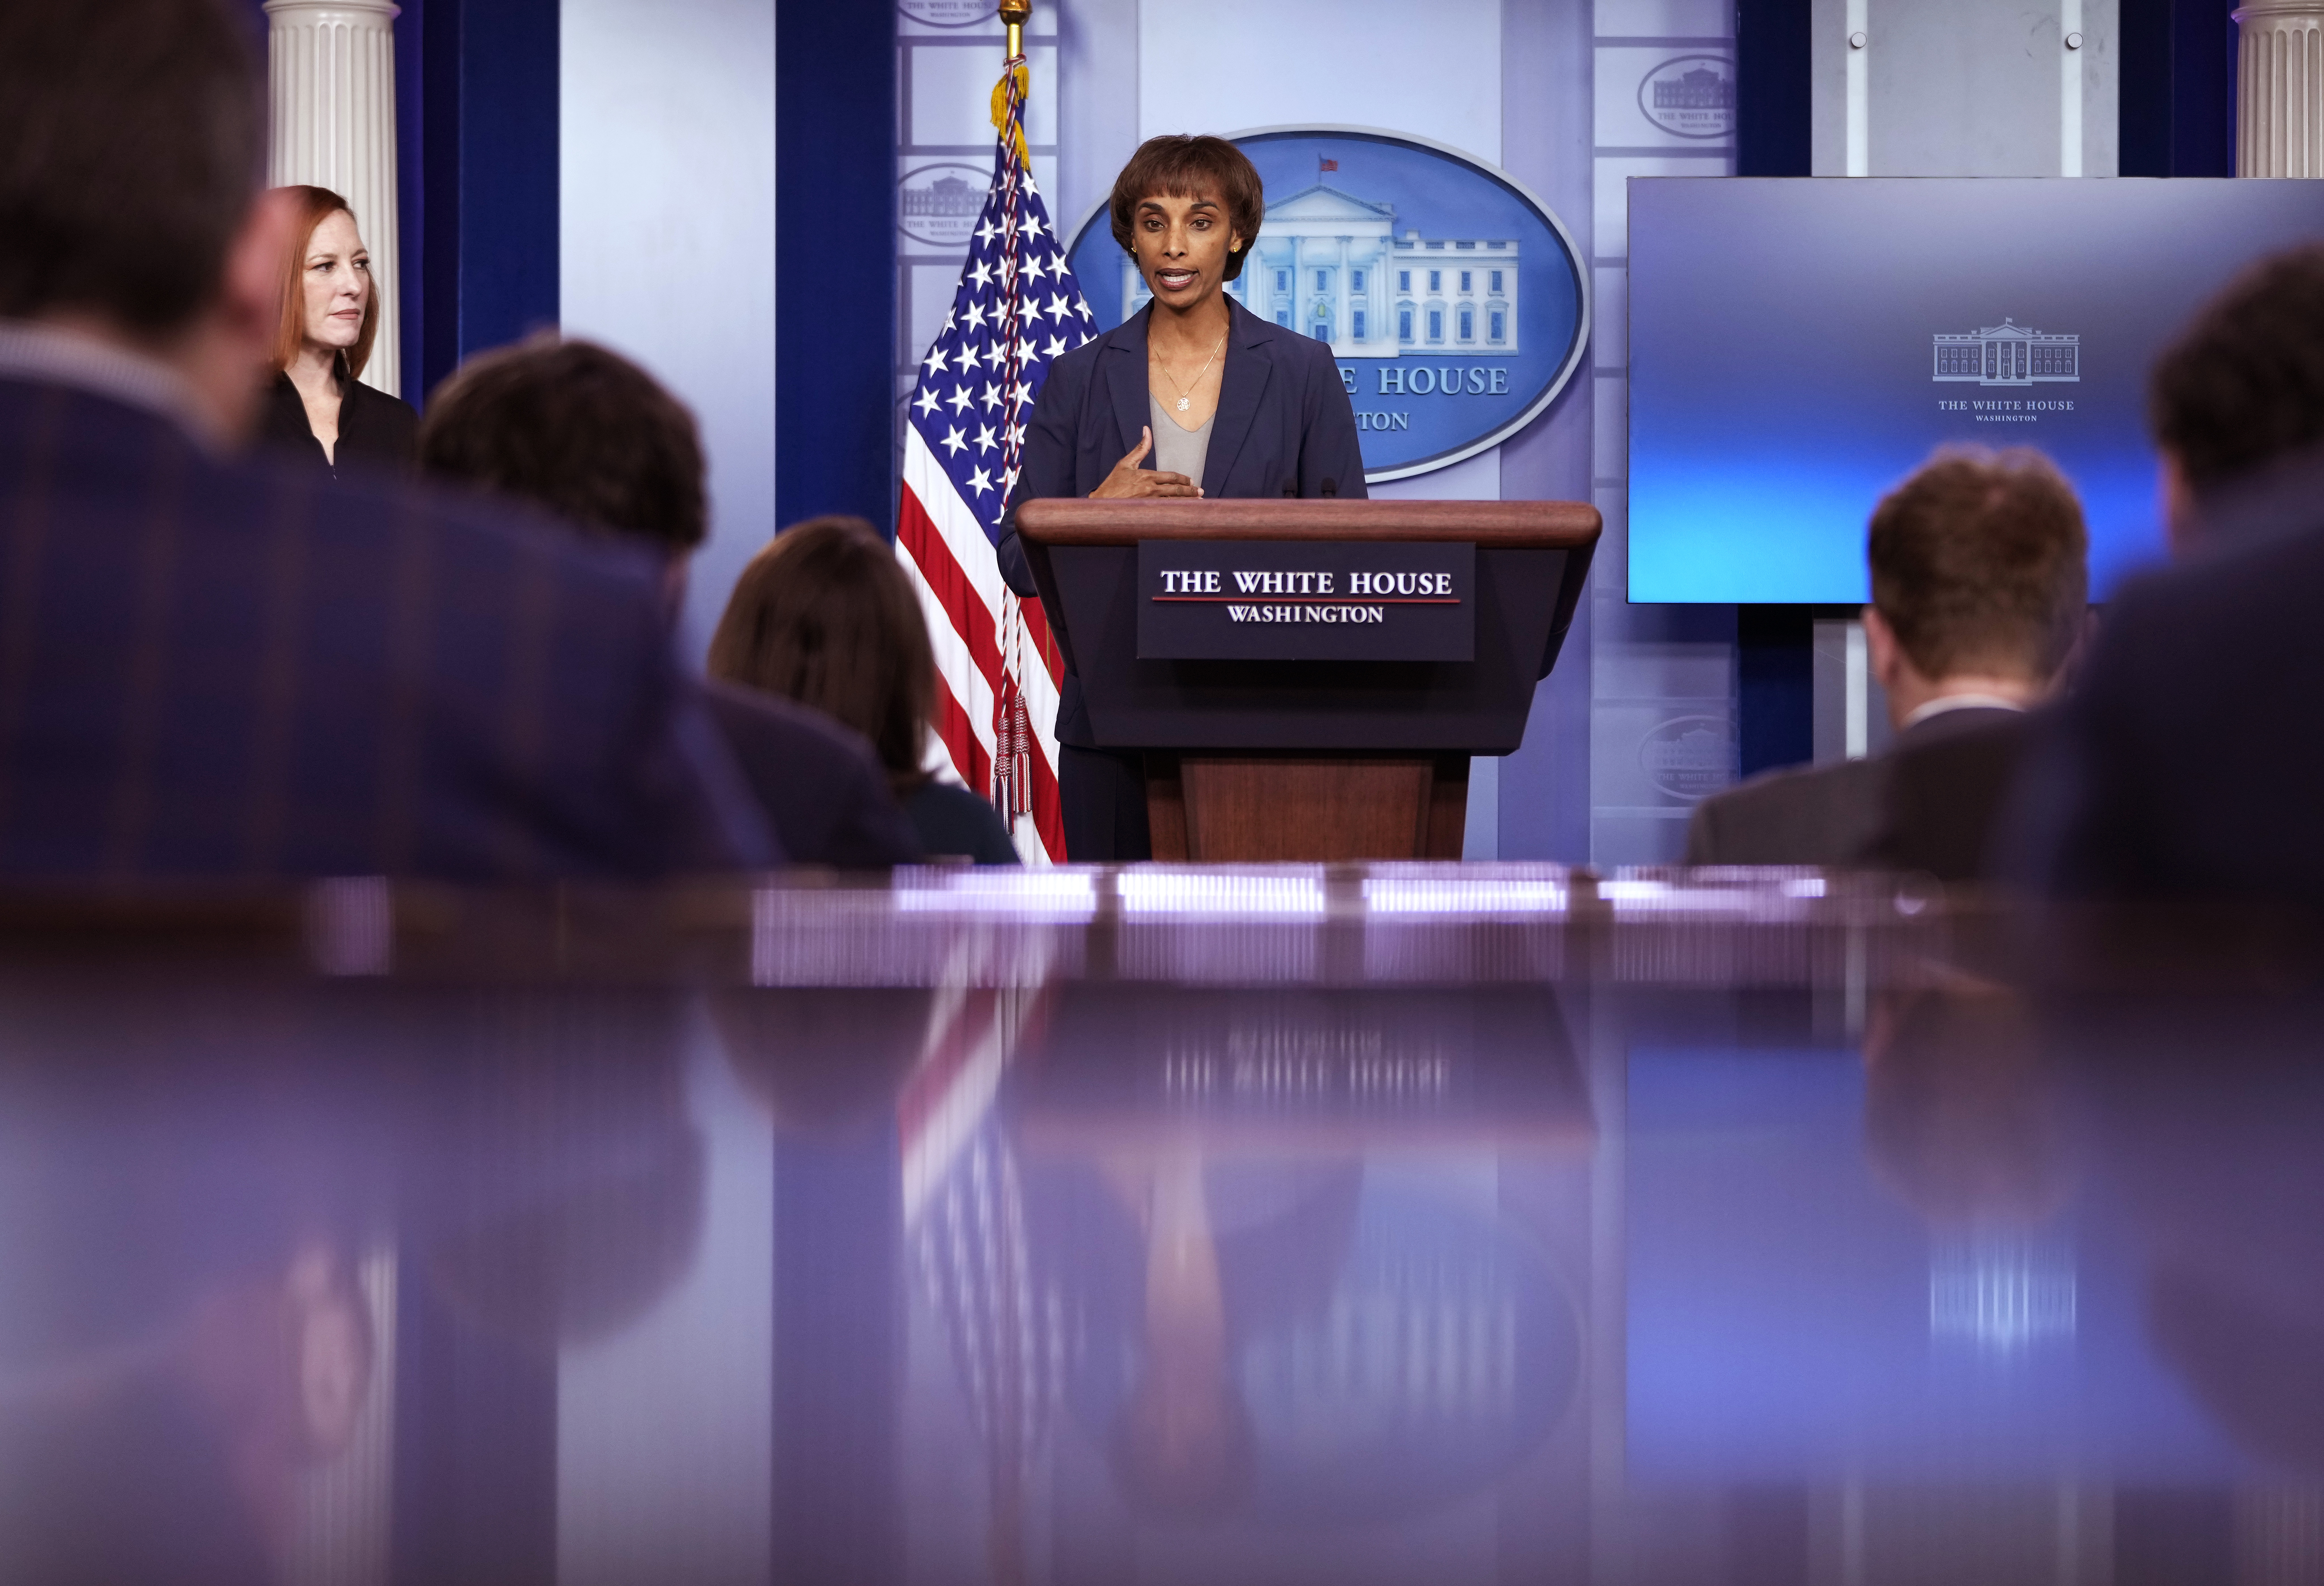 Council of Economic Advisers Chair Cecilia Rouse speaks during a news conference on May 14. (Drew Angerer/Getty Images)